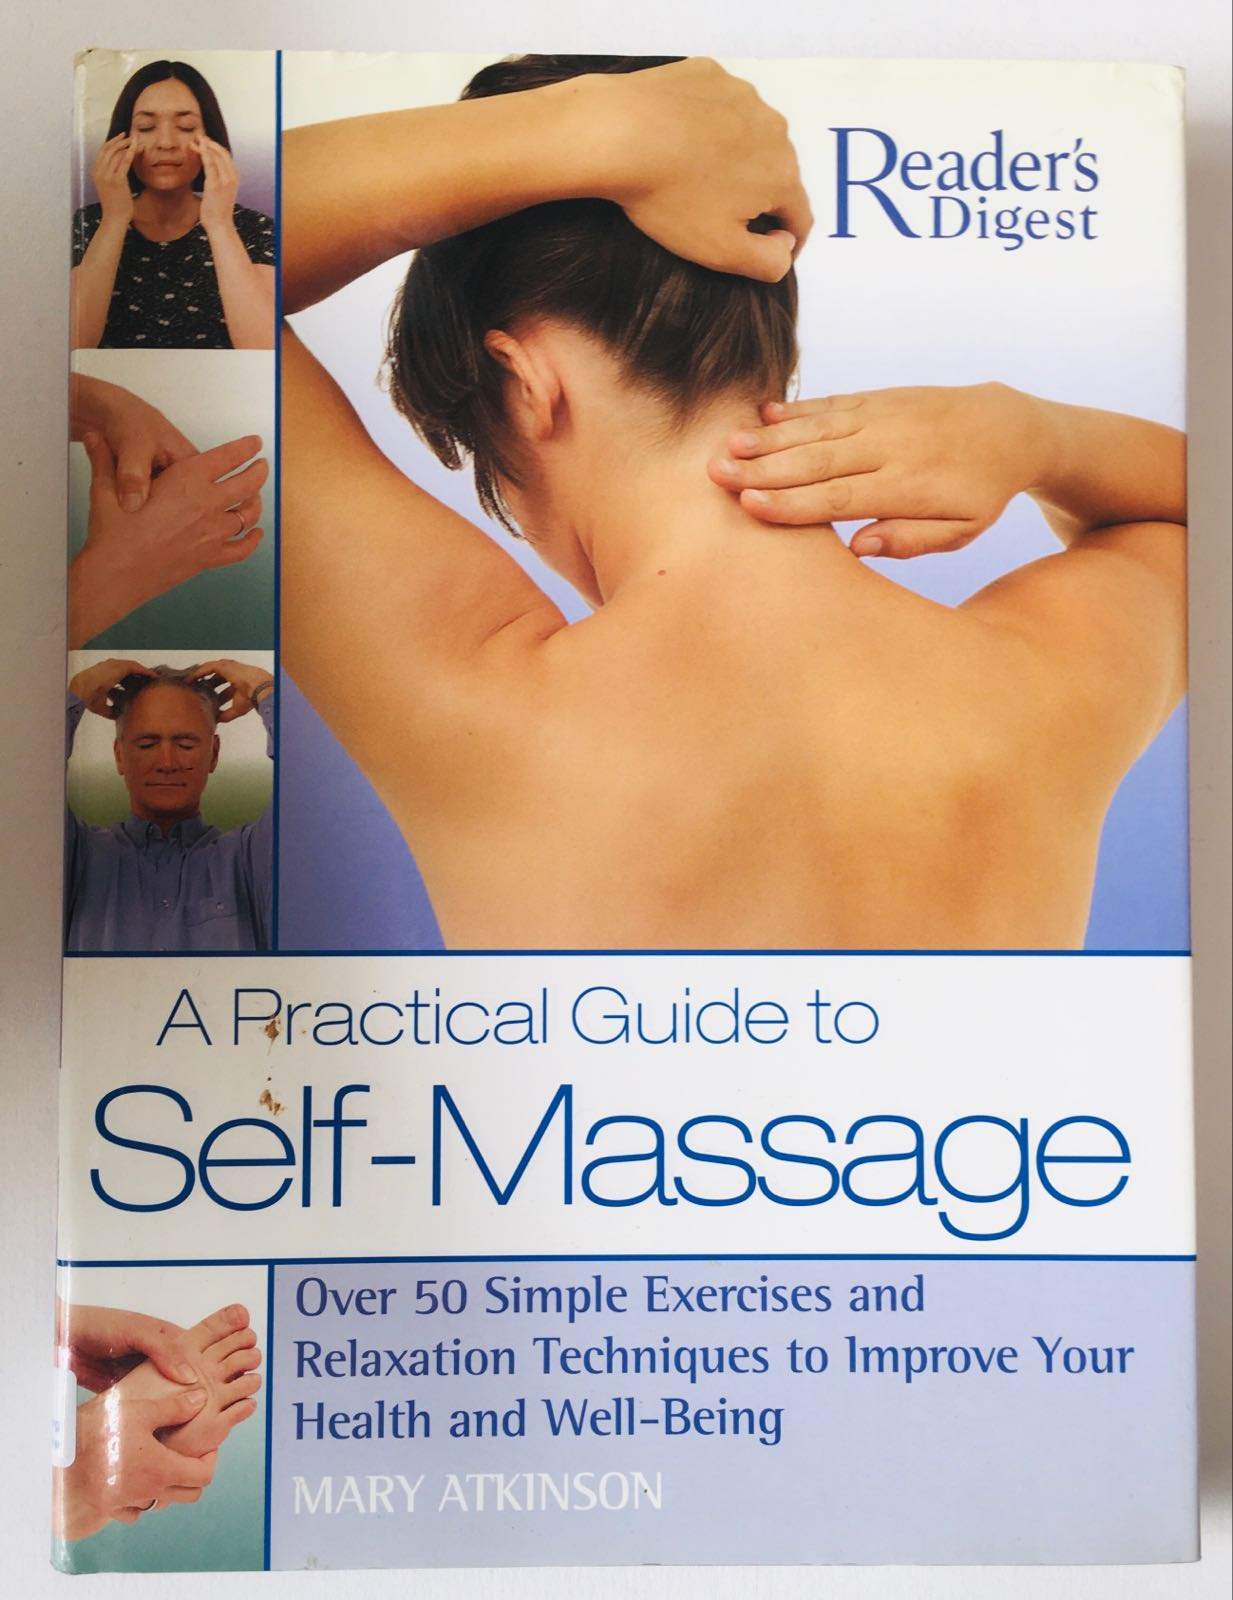 A Practical Guide to Self Massage: Over 50 Simple Exercises and Relaxation Techniques to Improve Your Health and Well-Being